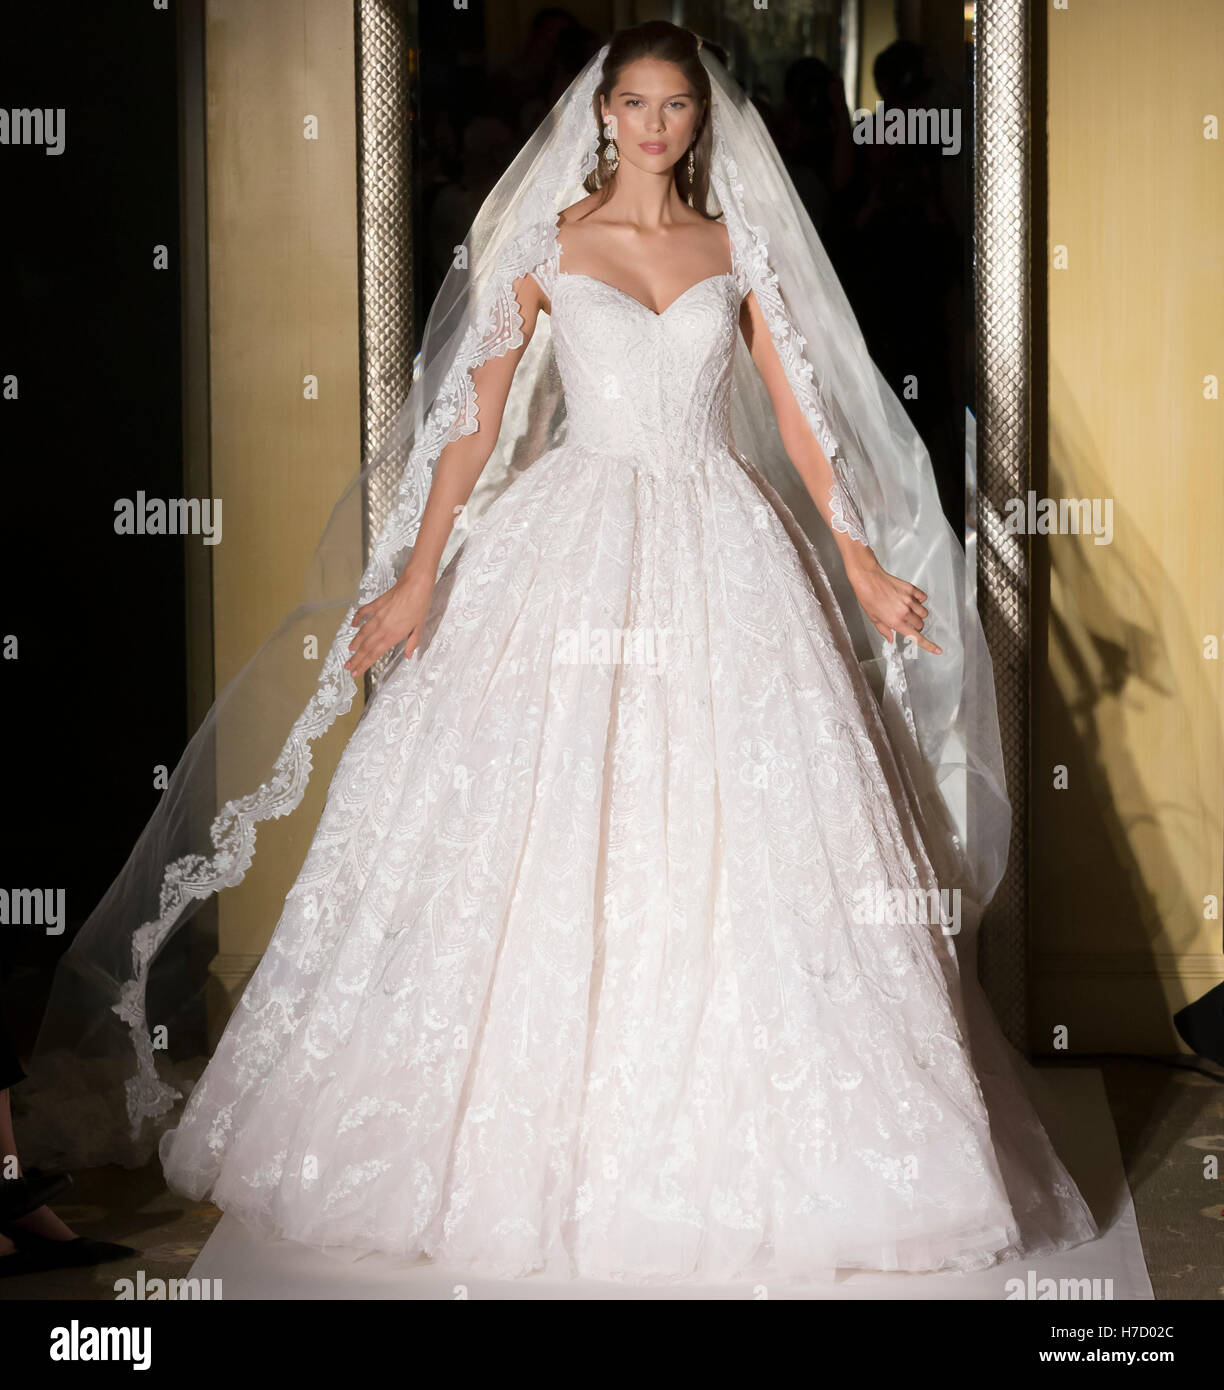 NEW YORK, NY - October 06, 2016: A model walks the runway during the Oleg Cassini Bridal Fall/Winter 2017 Runway - Stock Image